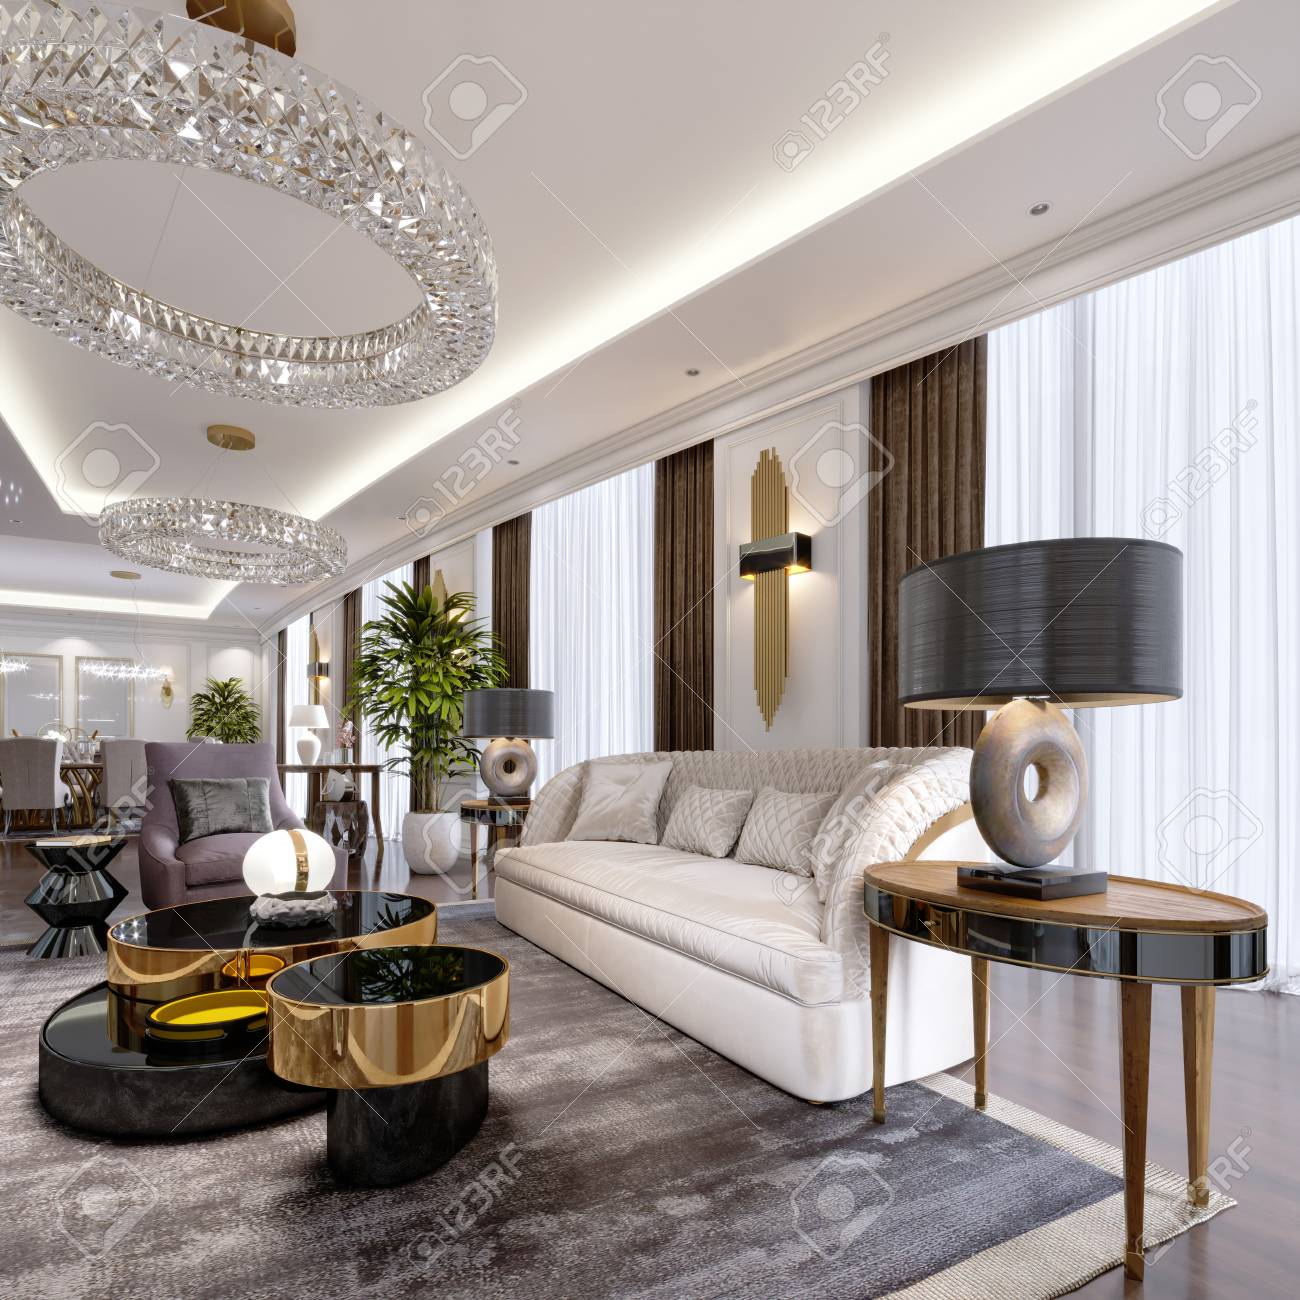 Luxury apartments in the hotel with a living room and dining..